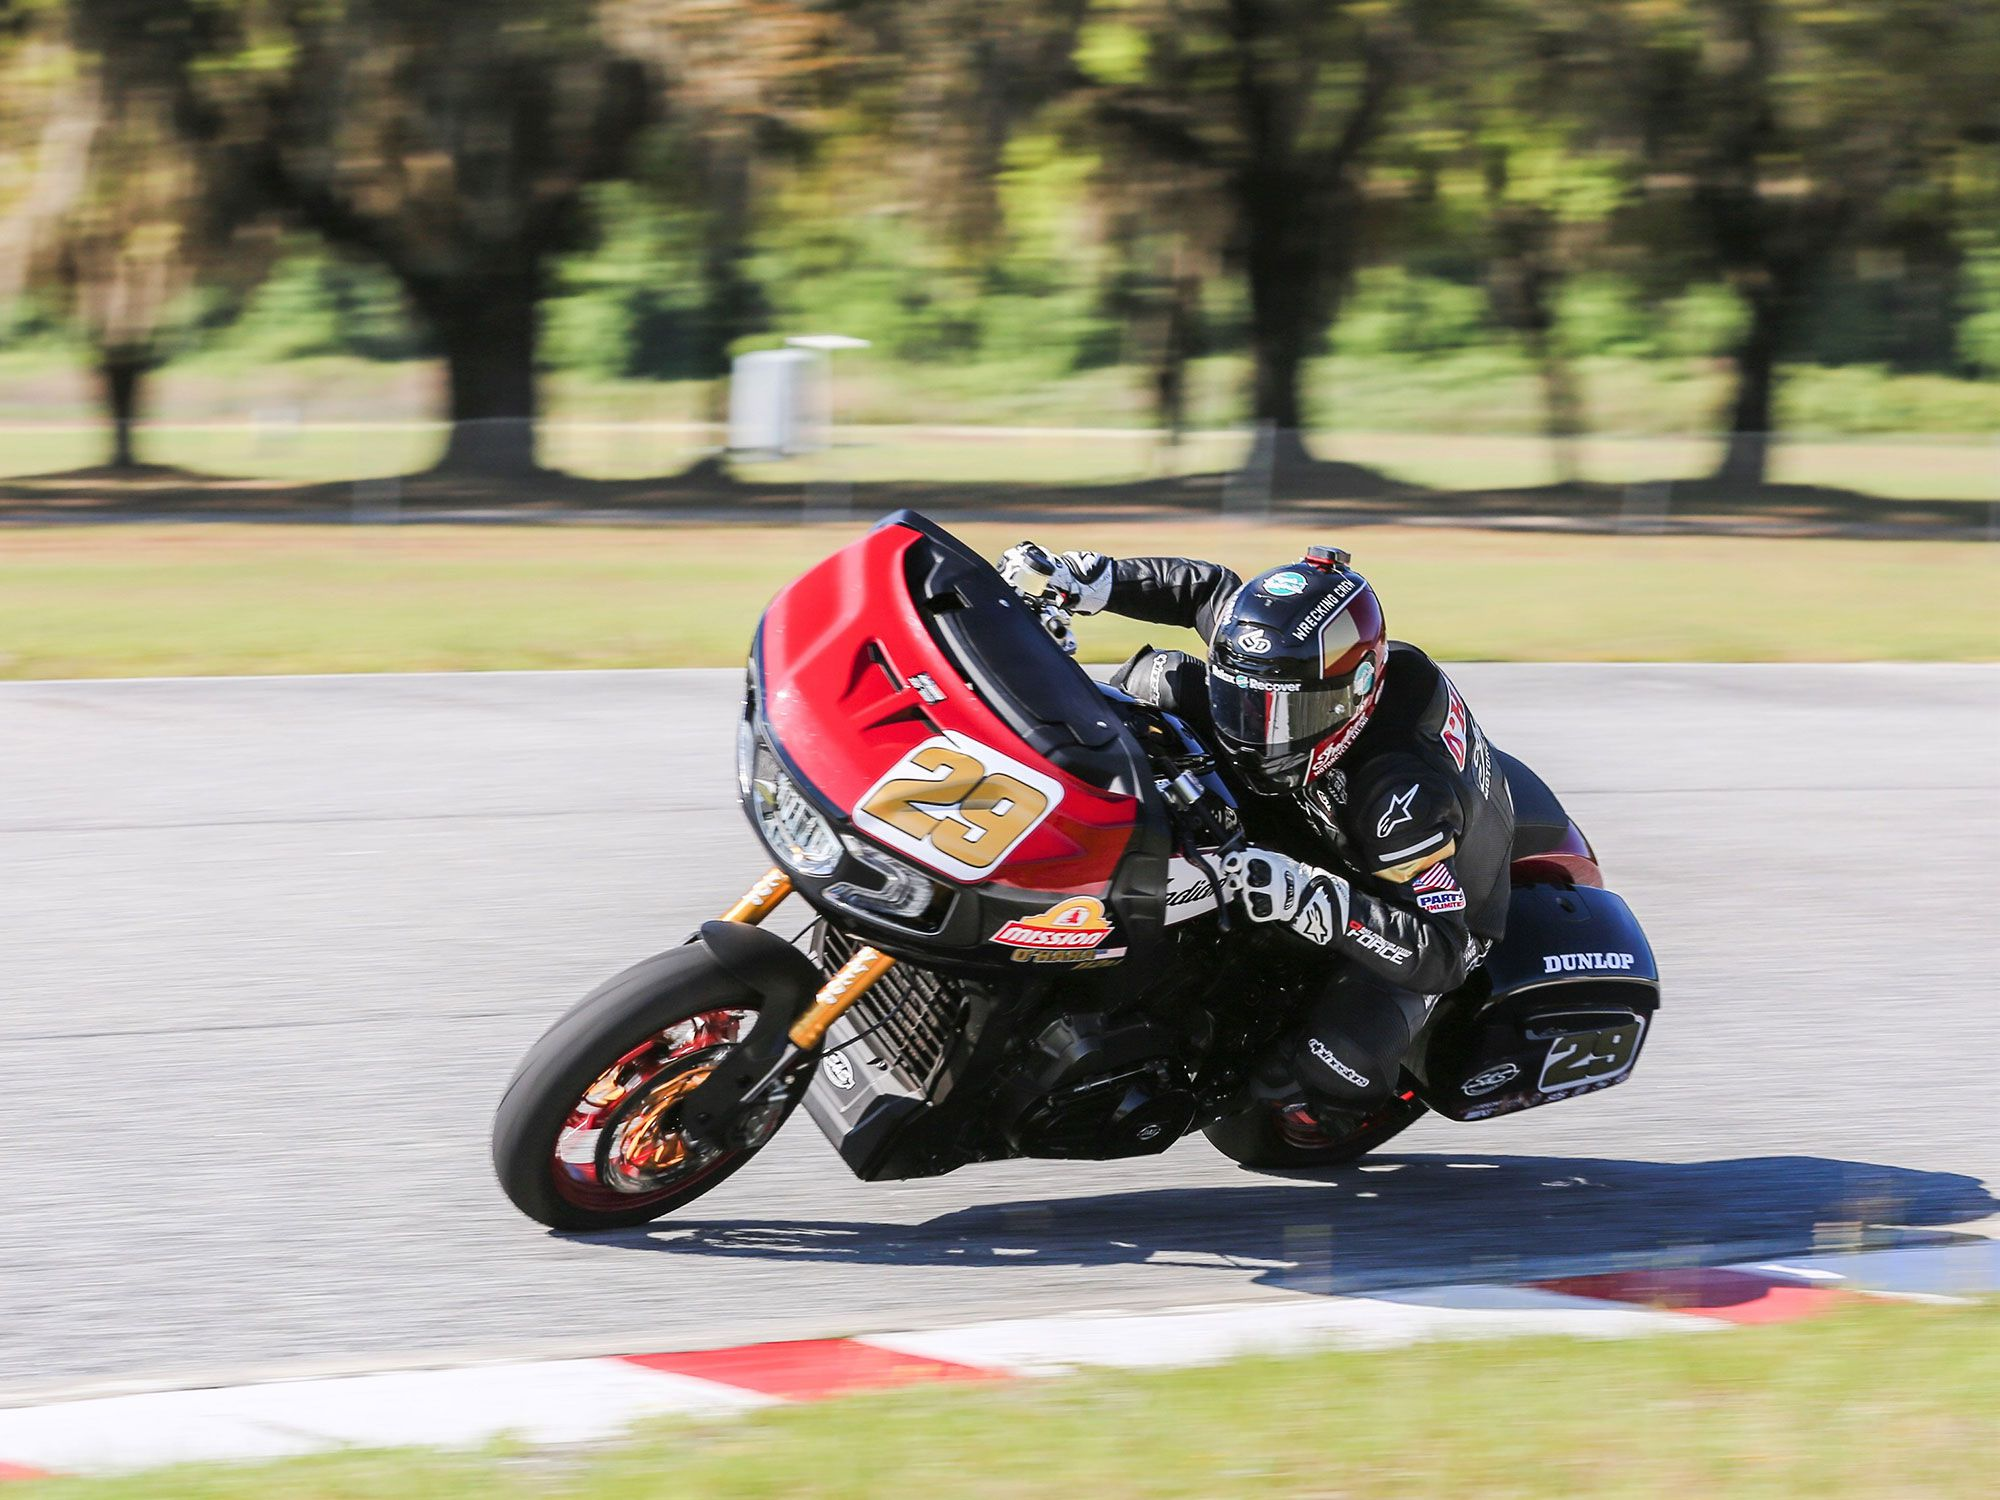 Tyler O'Hara Wins Round 1 of King of the Baggers Series